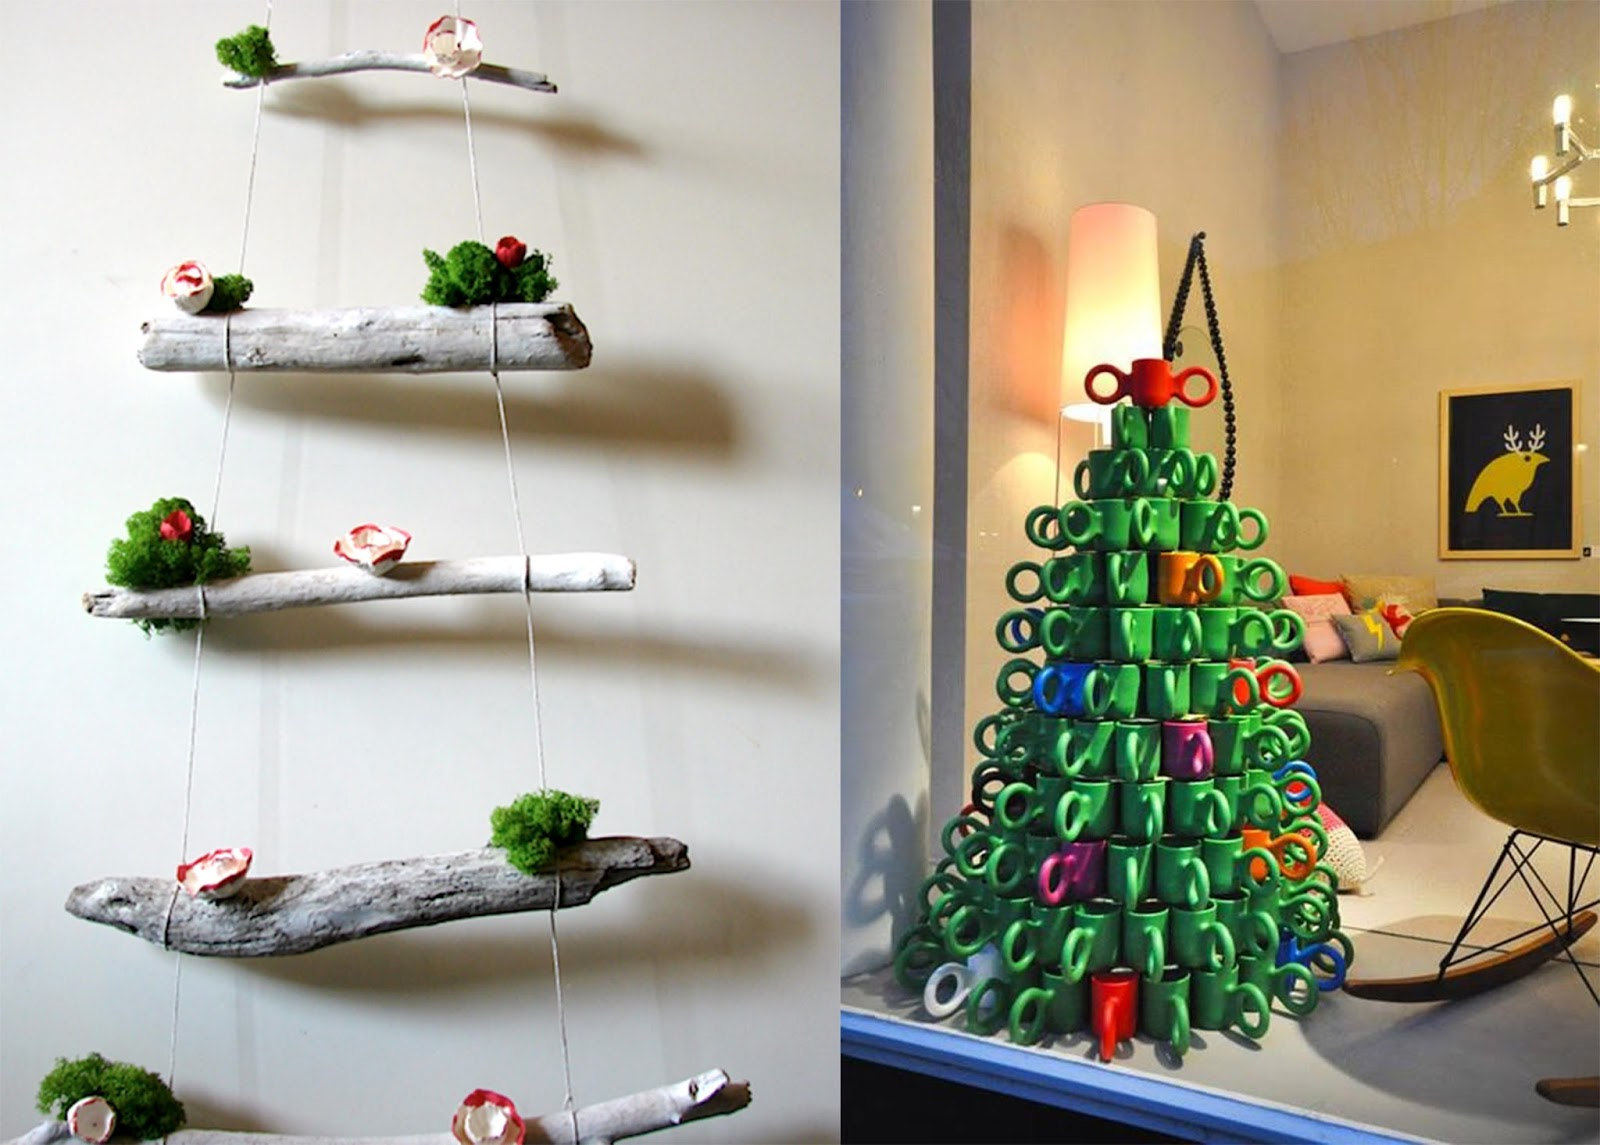 Idee originali per un natale creativo arc art blog by for Idee casa originali